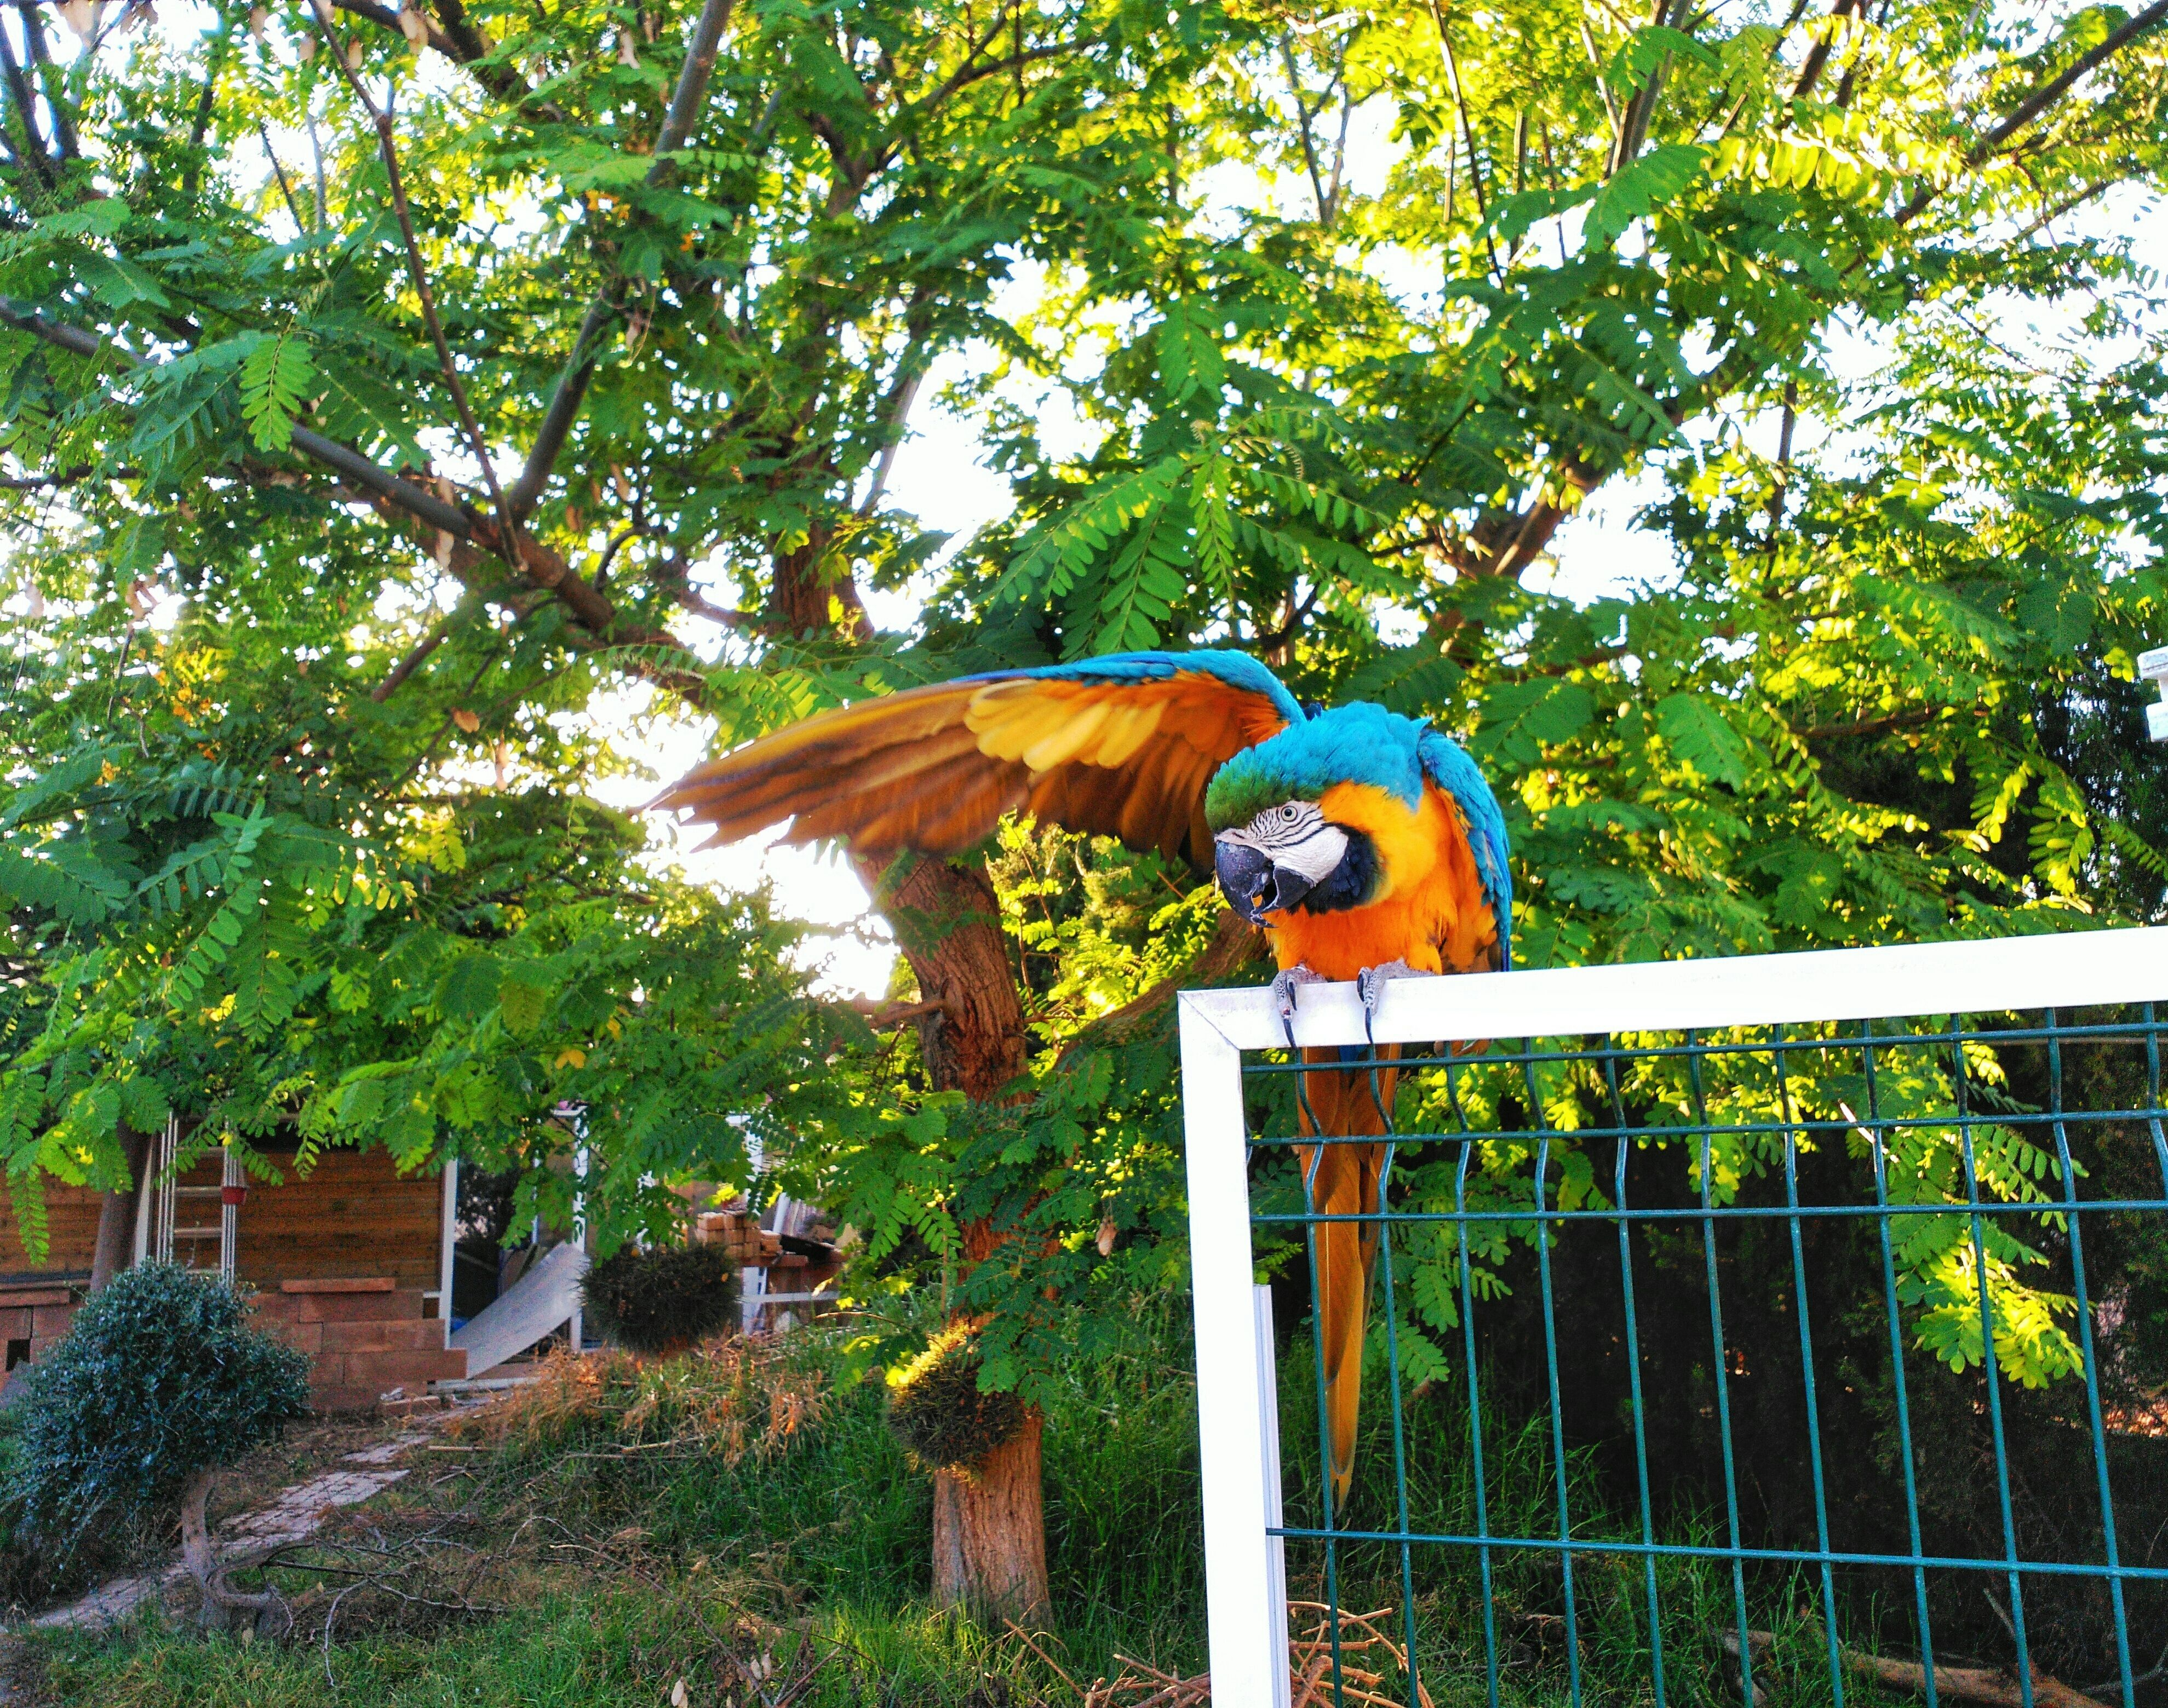 Gold and blue macaw perched on fence